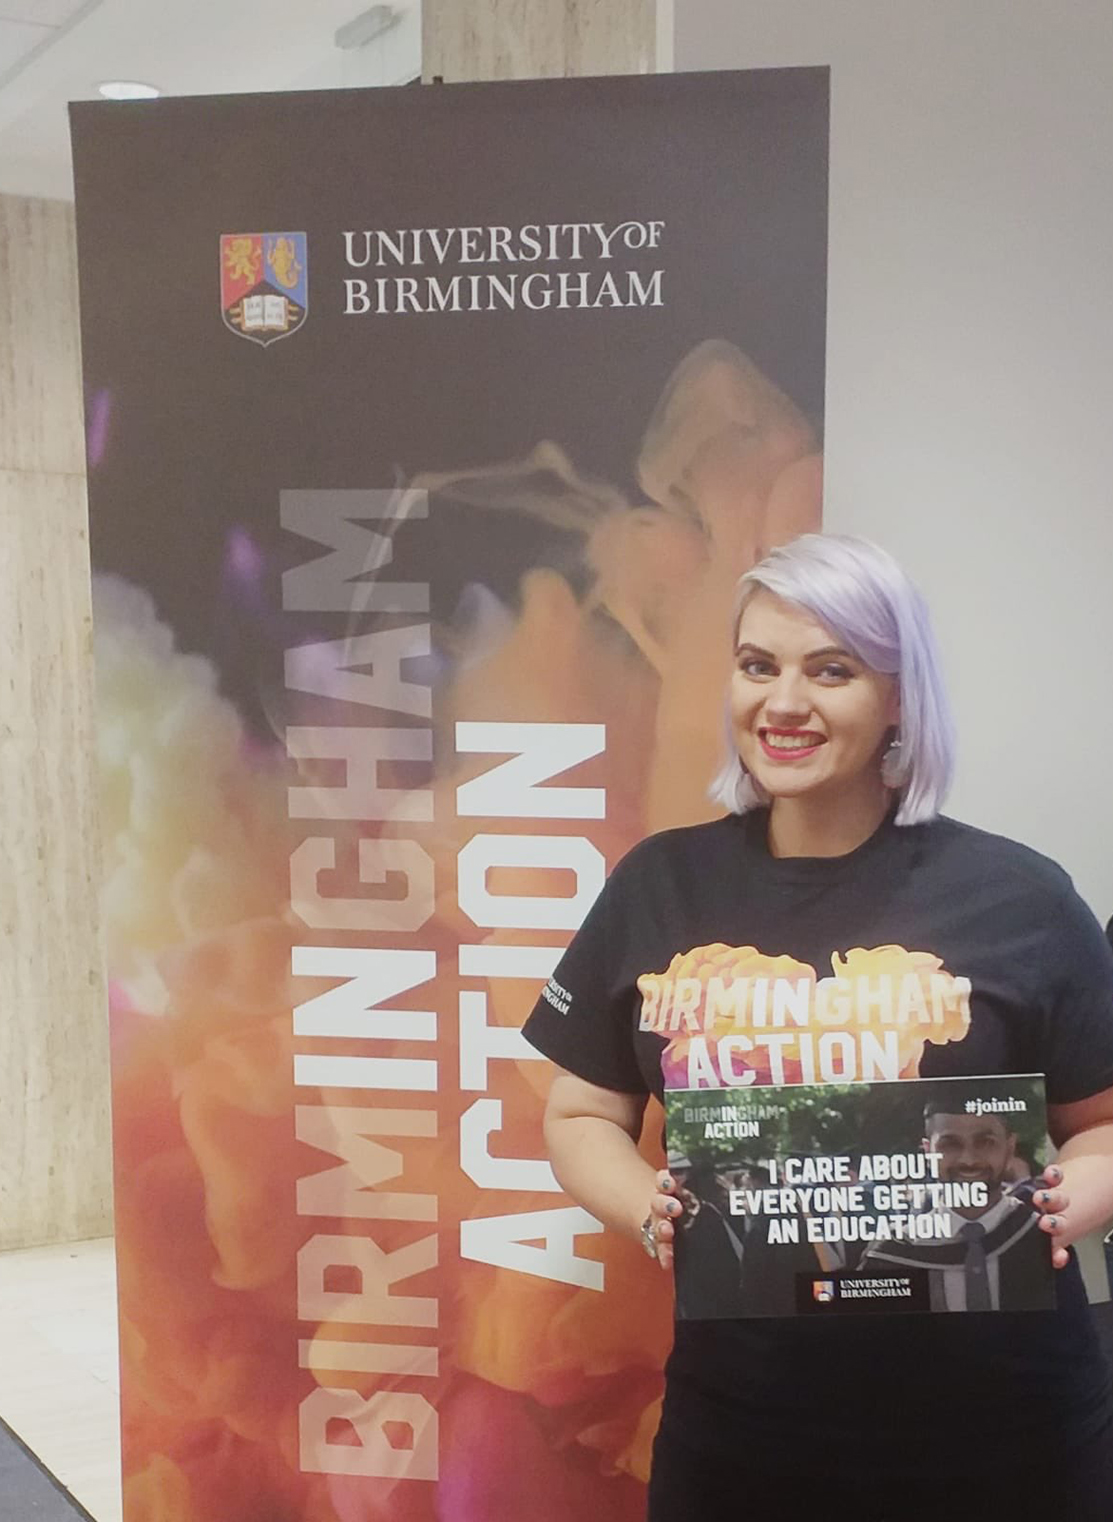 Female wearing black, orange and purple t-shirt that says 'Birmingham In Action' holding a sign that says 'I care about everyone getting an education' in front of a banner that says 'Birmingham In Action.'